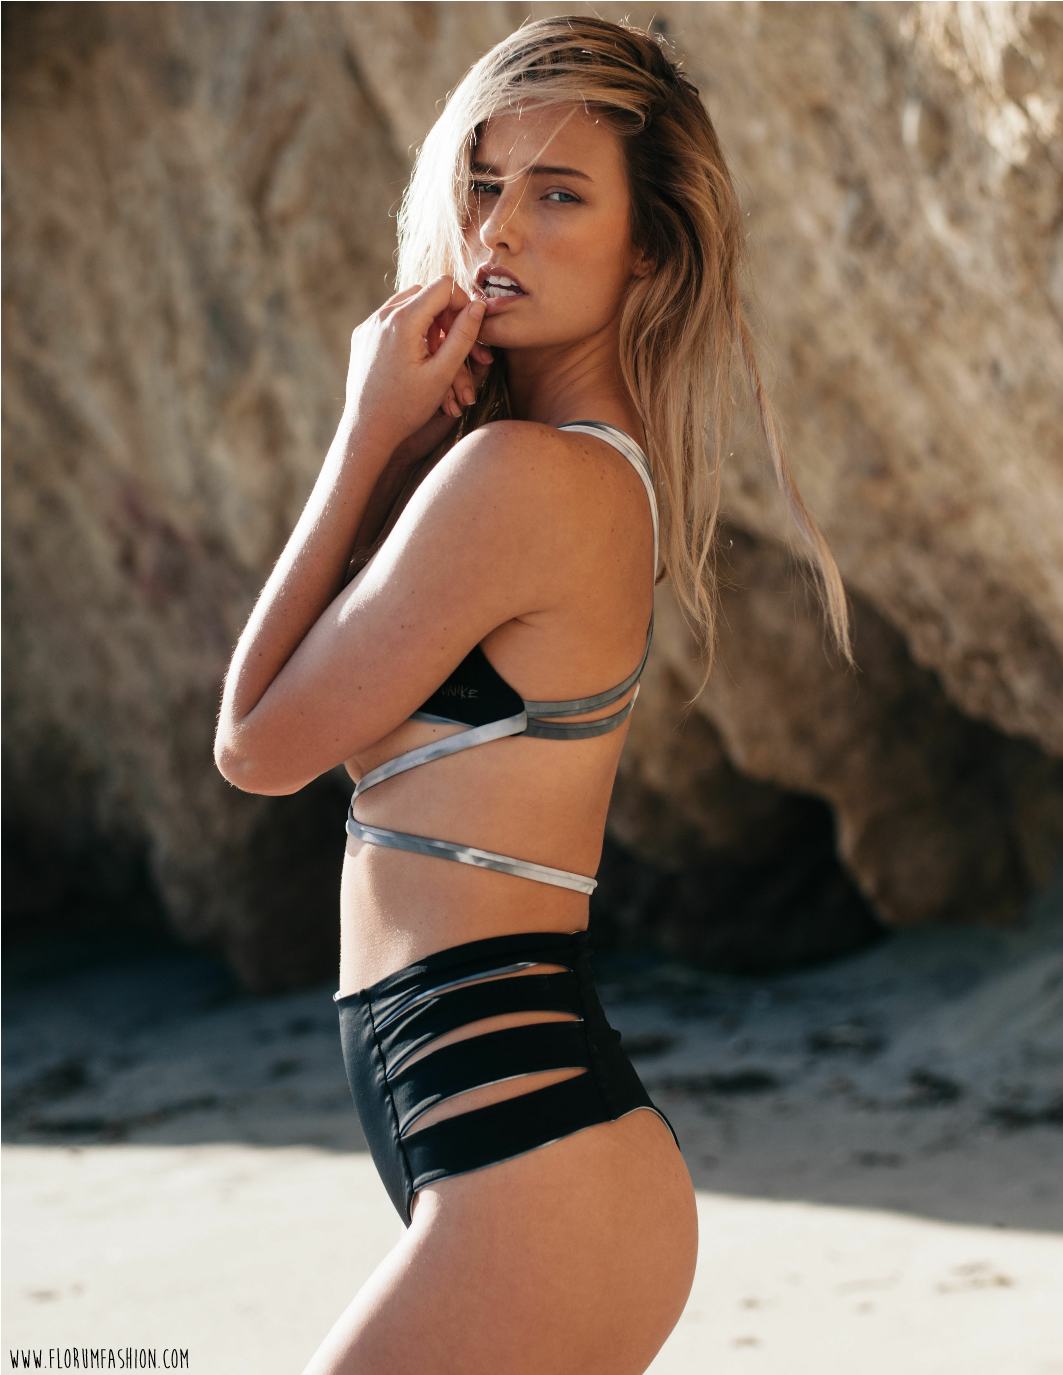 Unike Reversible Green Swimwear Brand - Florum Fashion Magazine - Stephen Sun - Brooke Buchanan - Slow Fashion Movement - Ethical - Hair by Hayk Hakobyan - Makeup by Nina Lopez